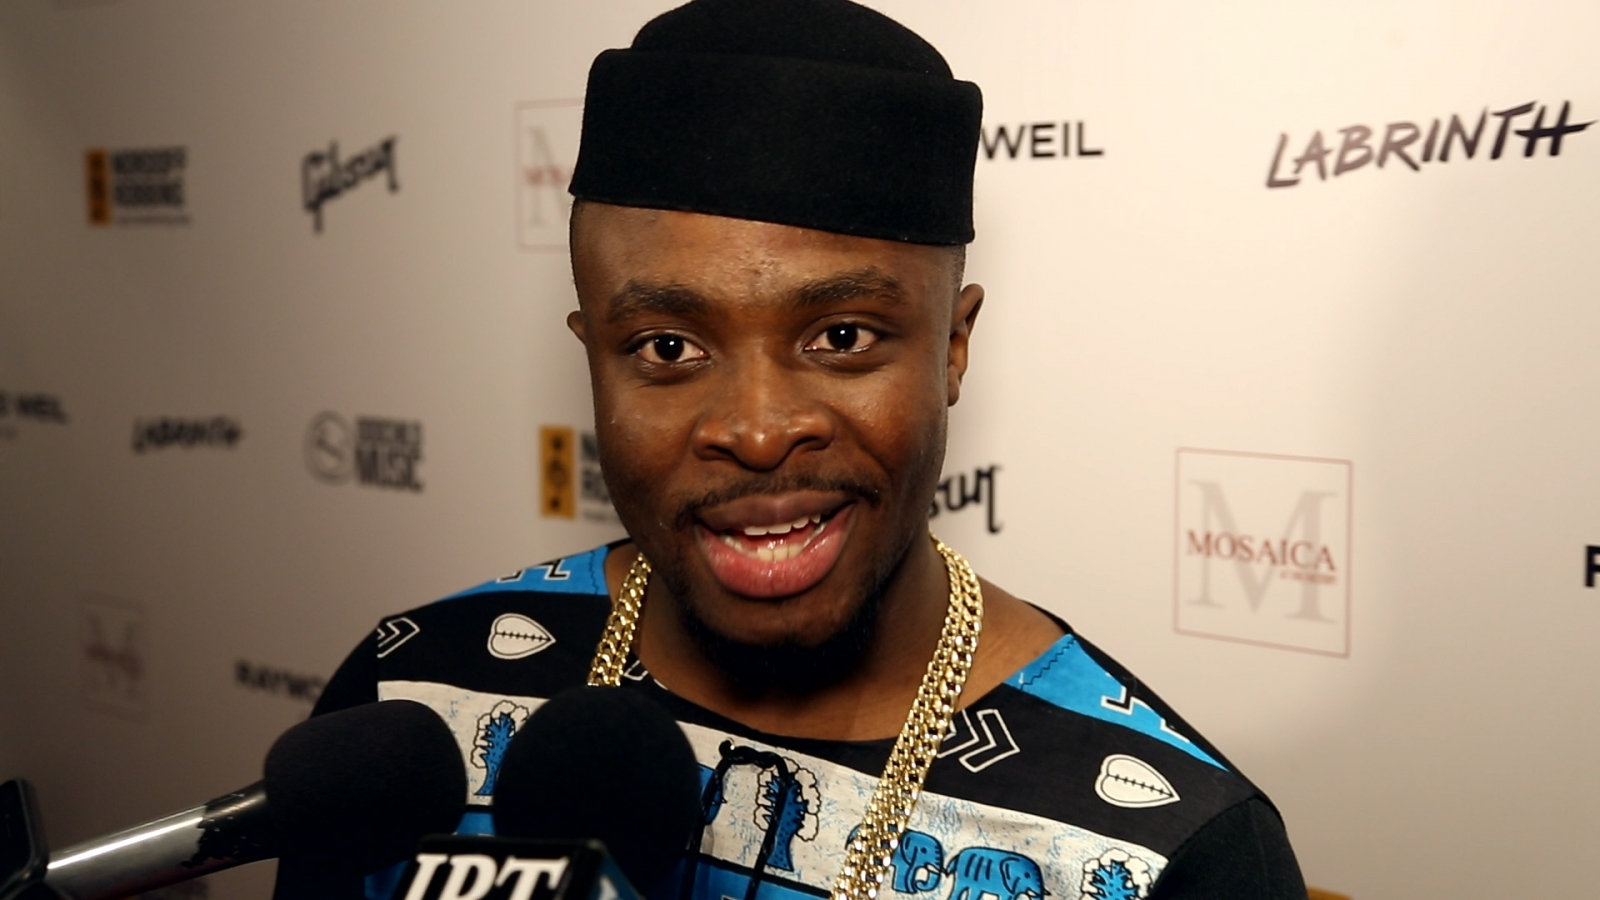 Fuse ODG to collaborate with Ed Sheeran? Afrobeats star to take his music in 'epic' new direction